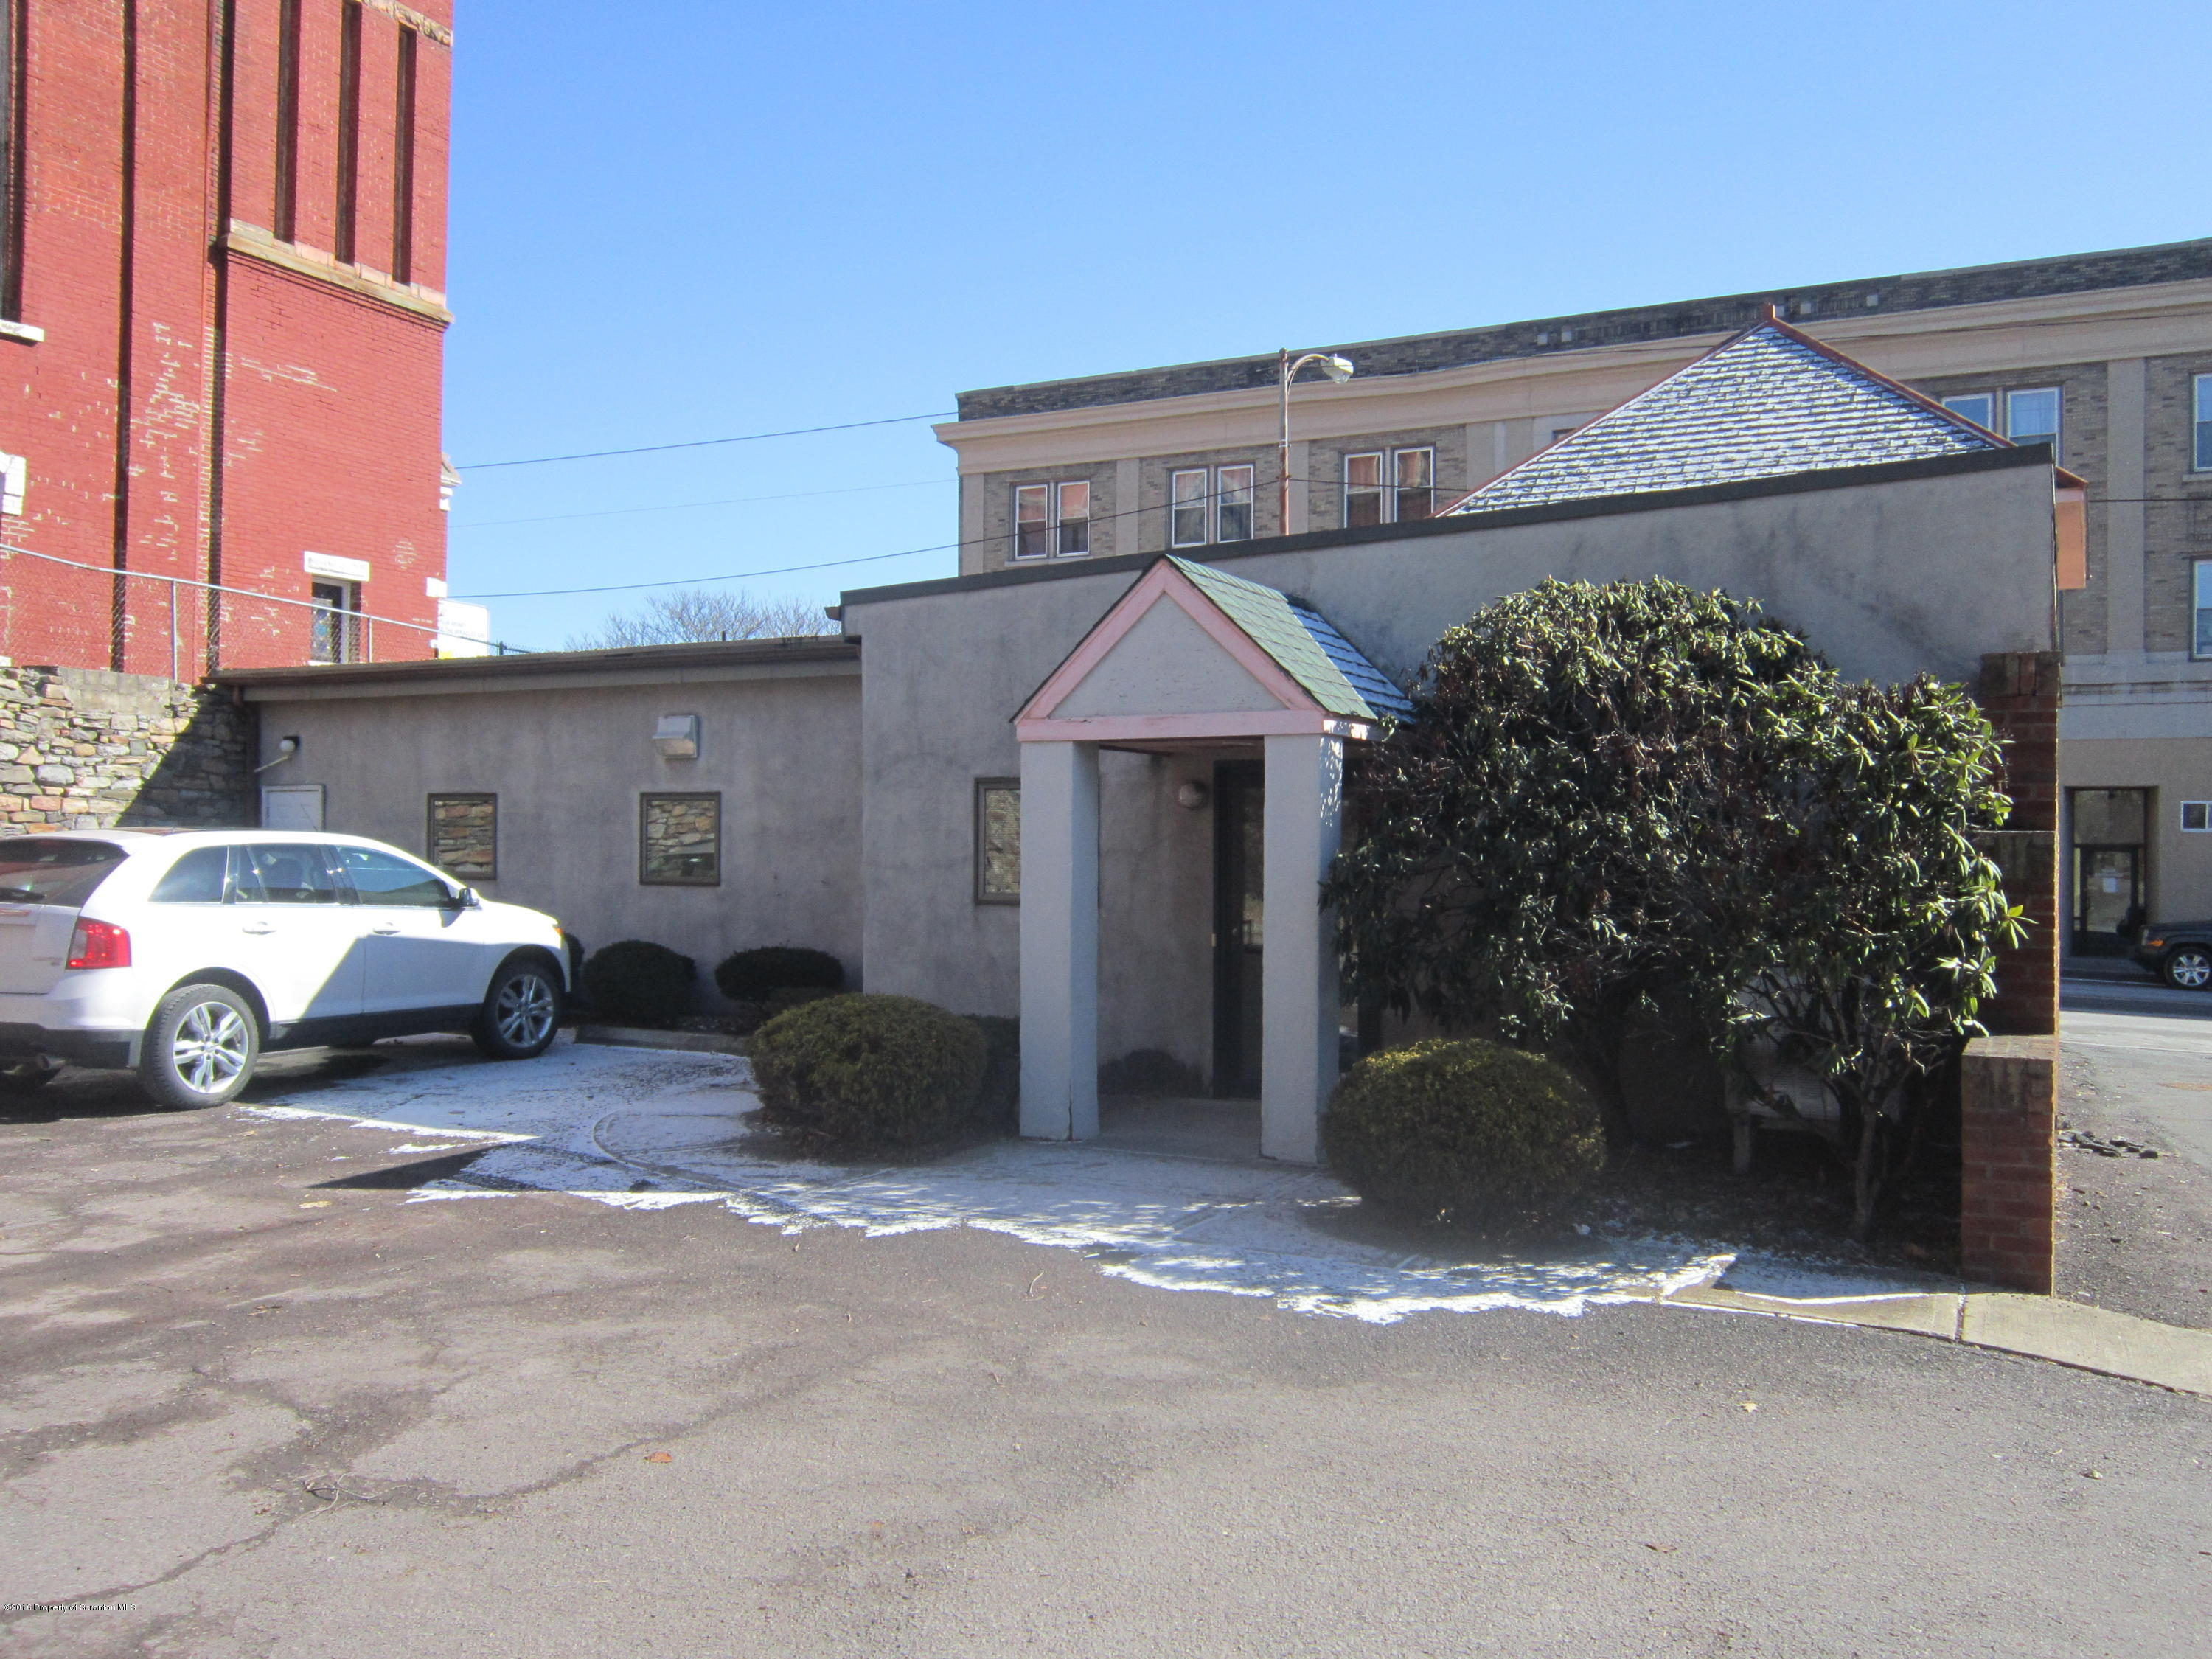 219 Main Ave, Scranton, Pennsylvania 18504, ,1.5 BathroomsBathrooms,Commercial,For Sale,Main,16-944